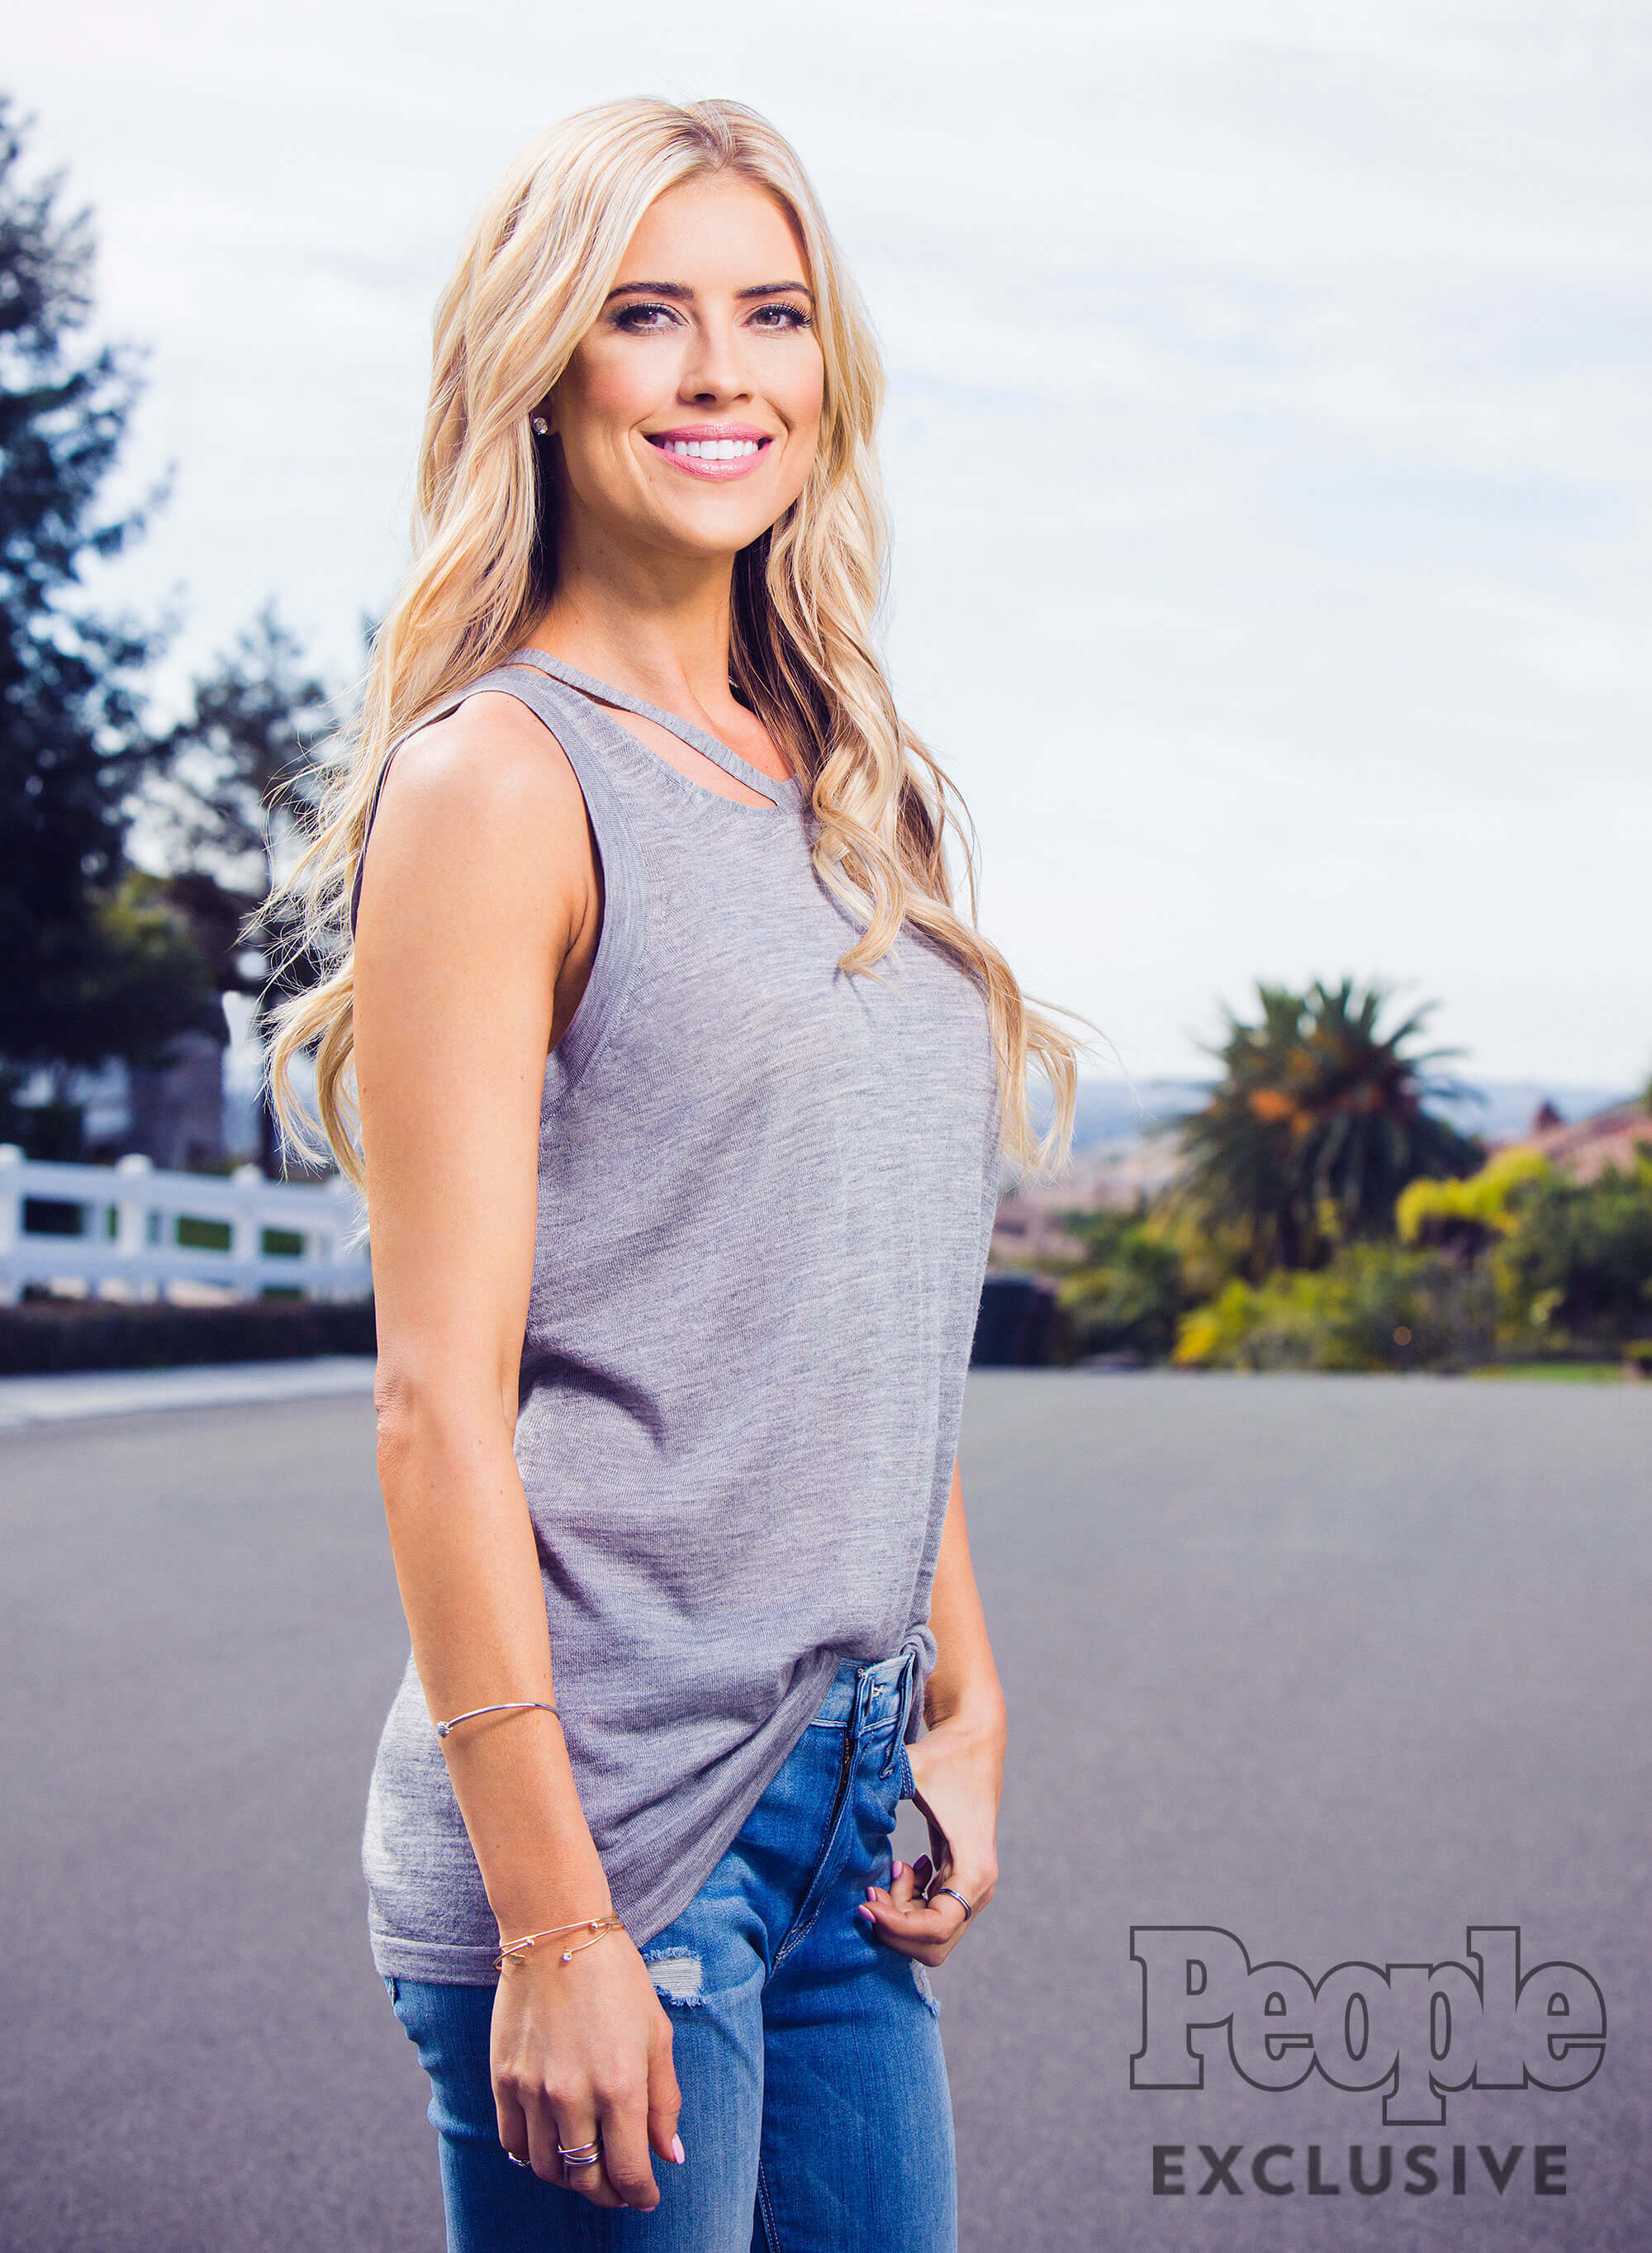 Christina Anstead hot pic